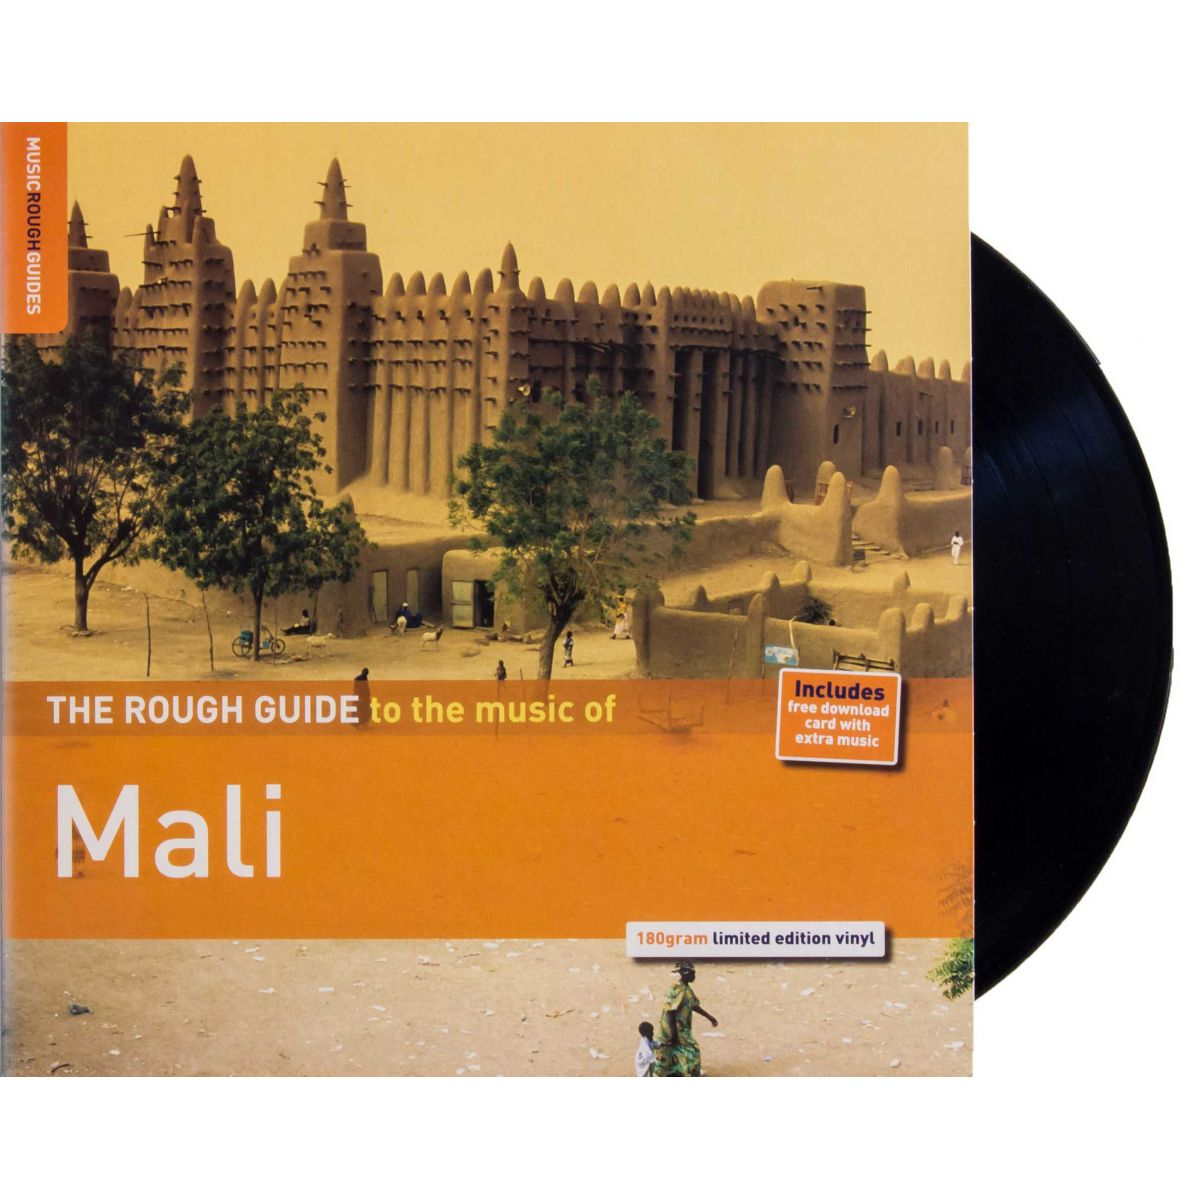 Lp Vinil Rough Guide To The Music Of Mali